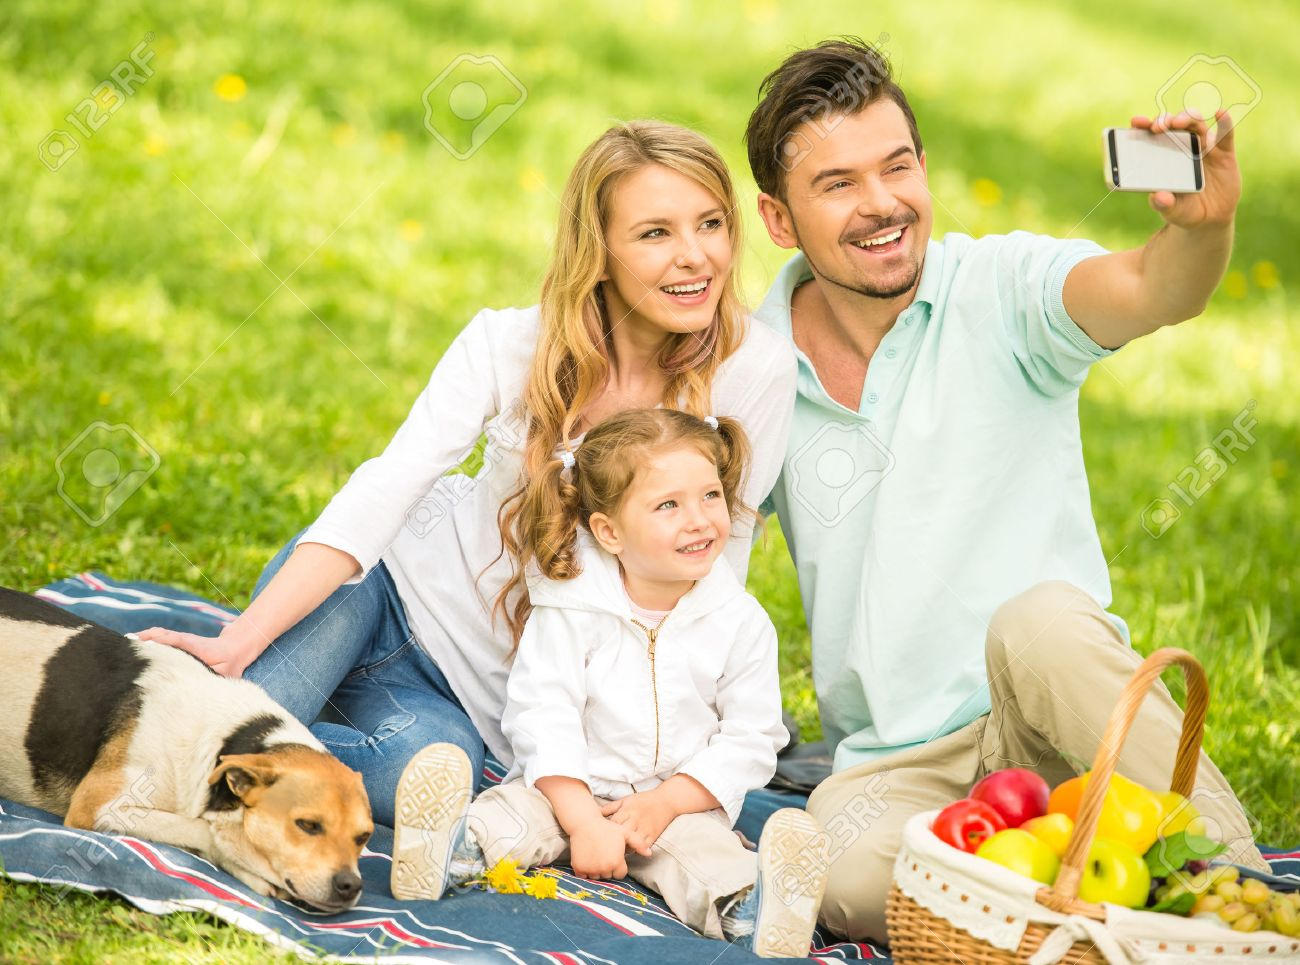 570b375985d Image of happy young family having picnic outdoors and making selfie. Stock  Photo - 40623050